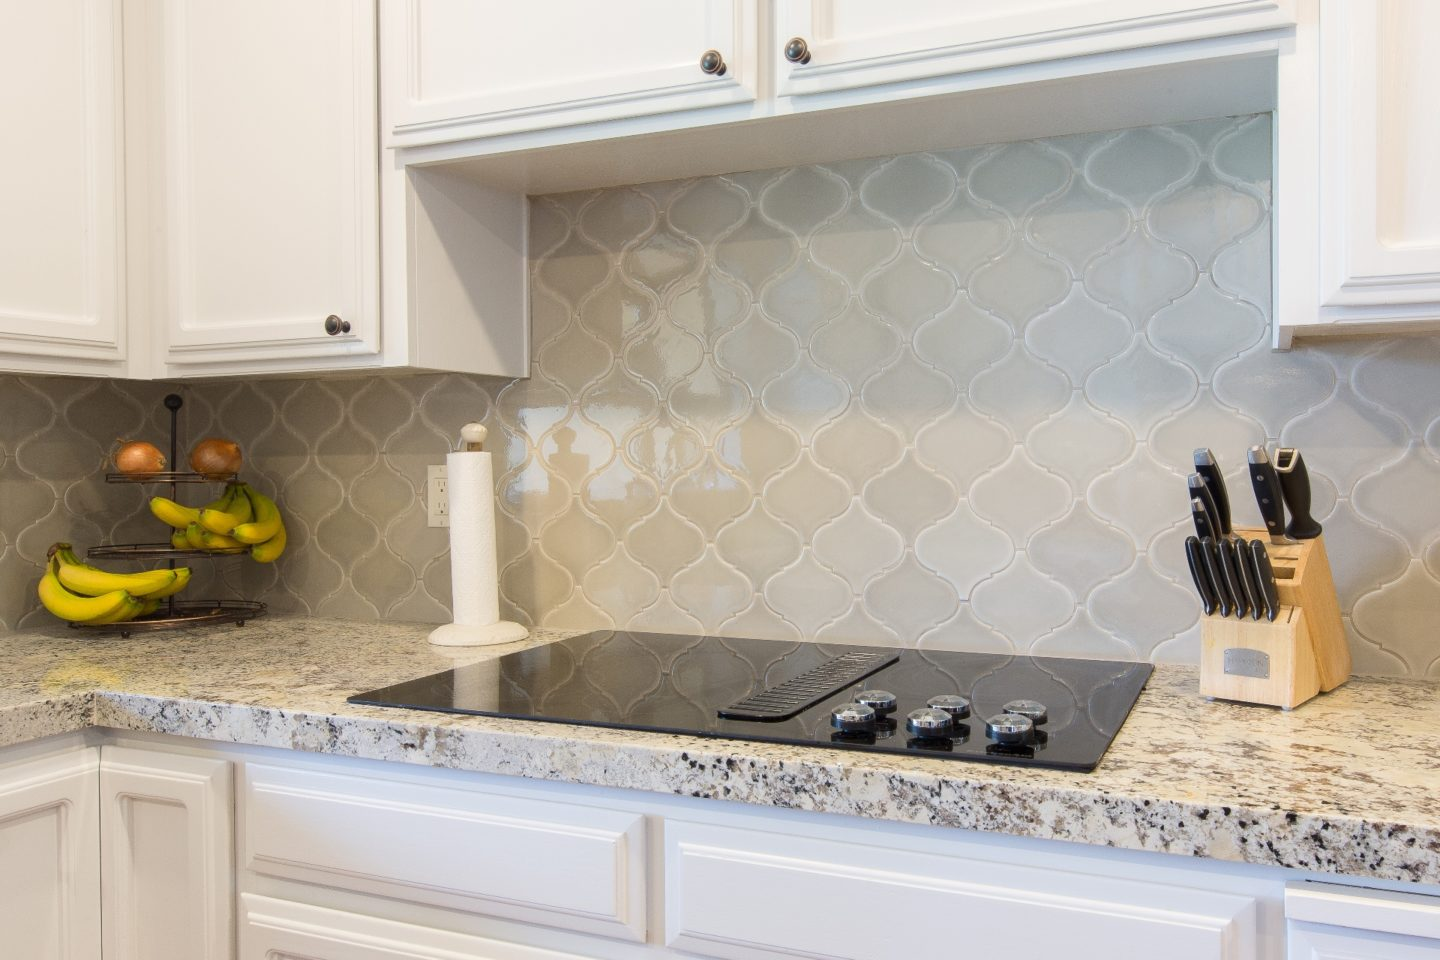 Awesome Arabesque U2013 Arabesque Patterns Are Certainly En Vogue These Days,  And This High Gloss Example Blends Perfectly With The Rich Granite  Countertops And ...